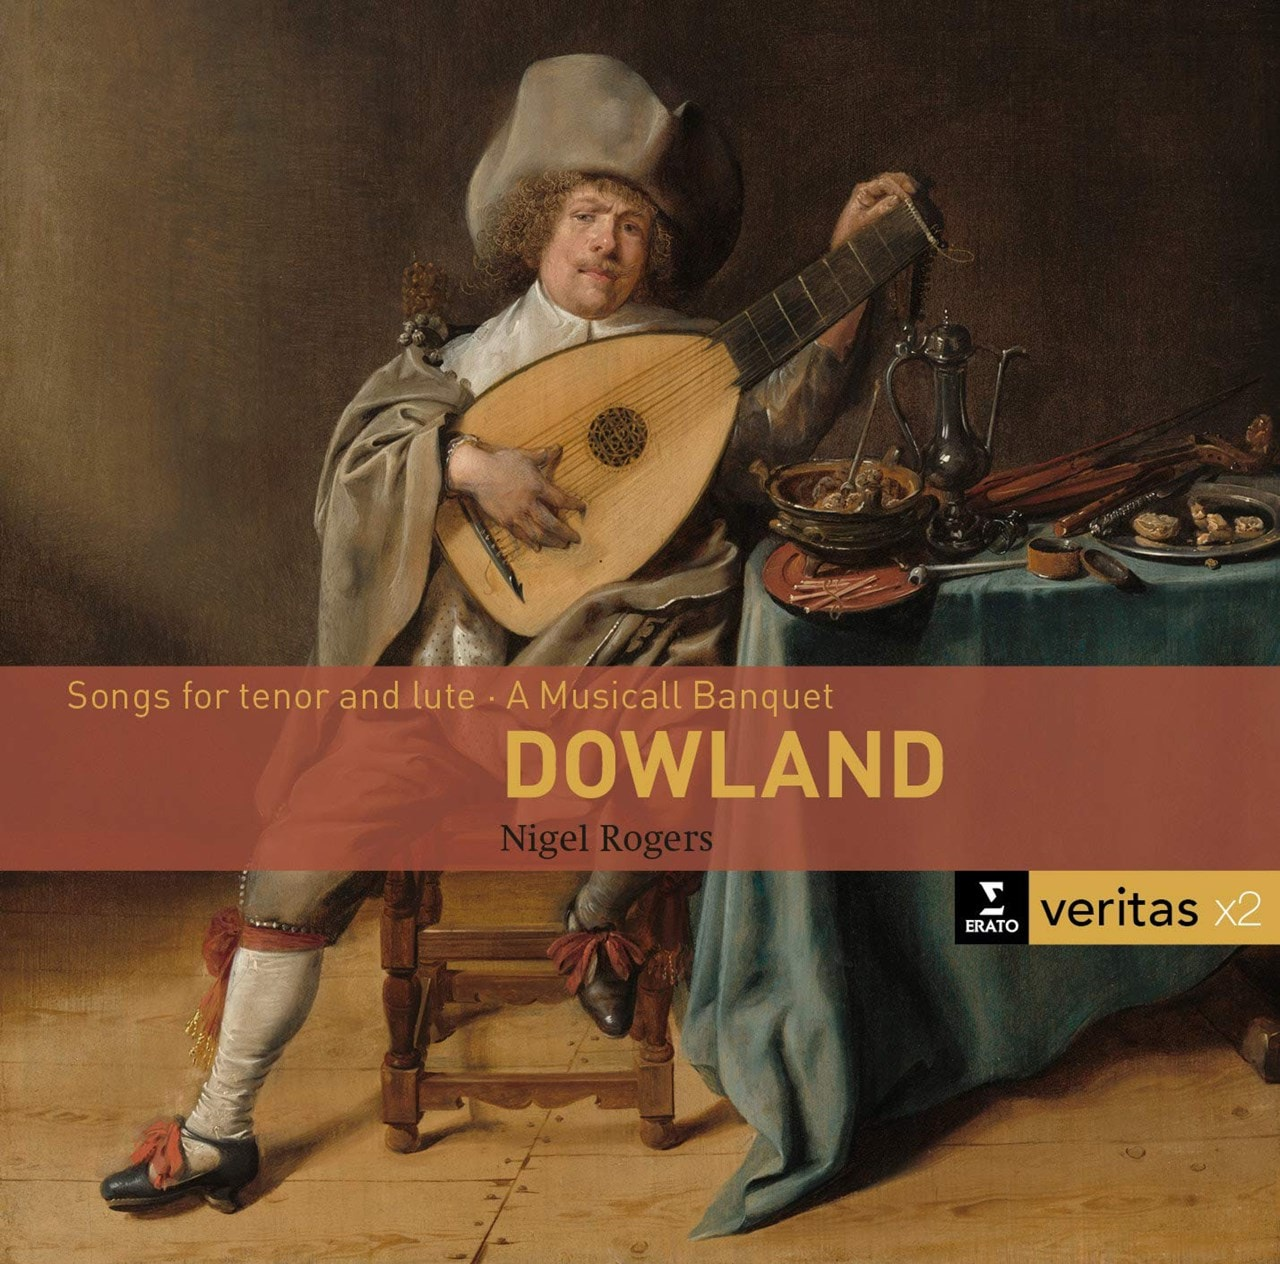 Dowland: Songs for Tenor and Lute/A Musicall Banquet - 1